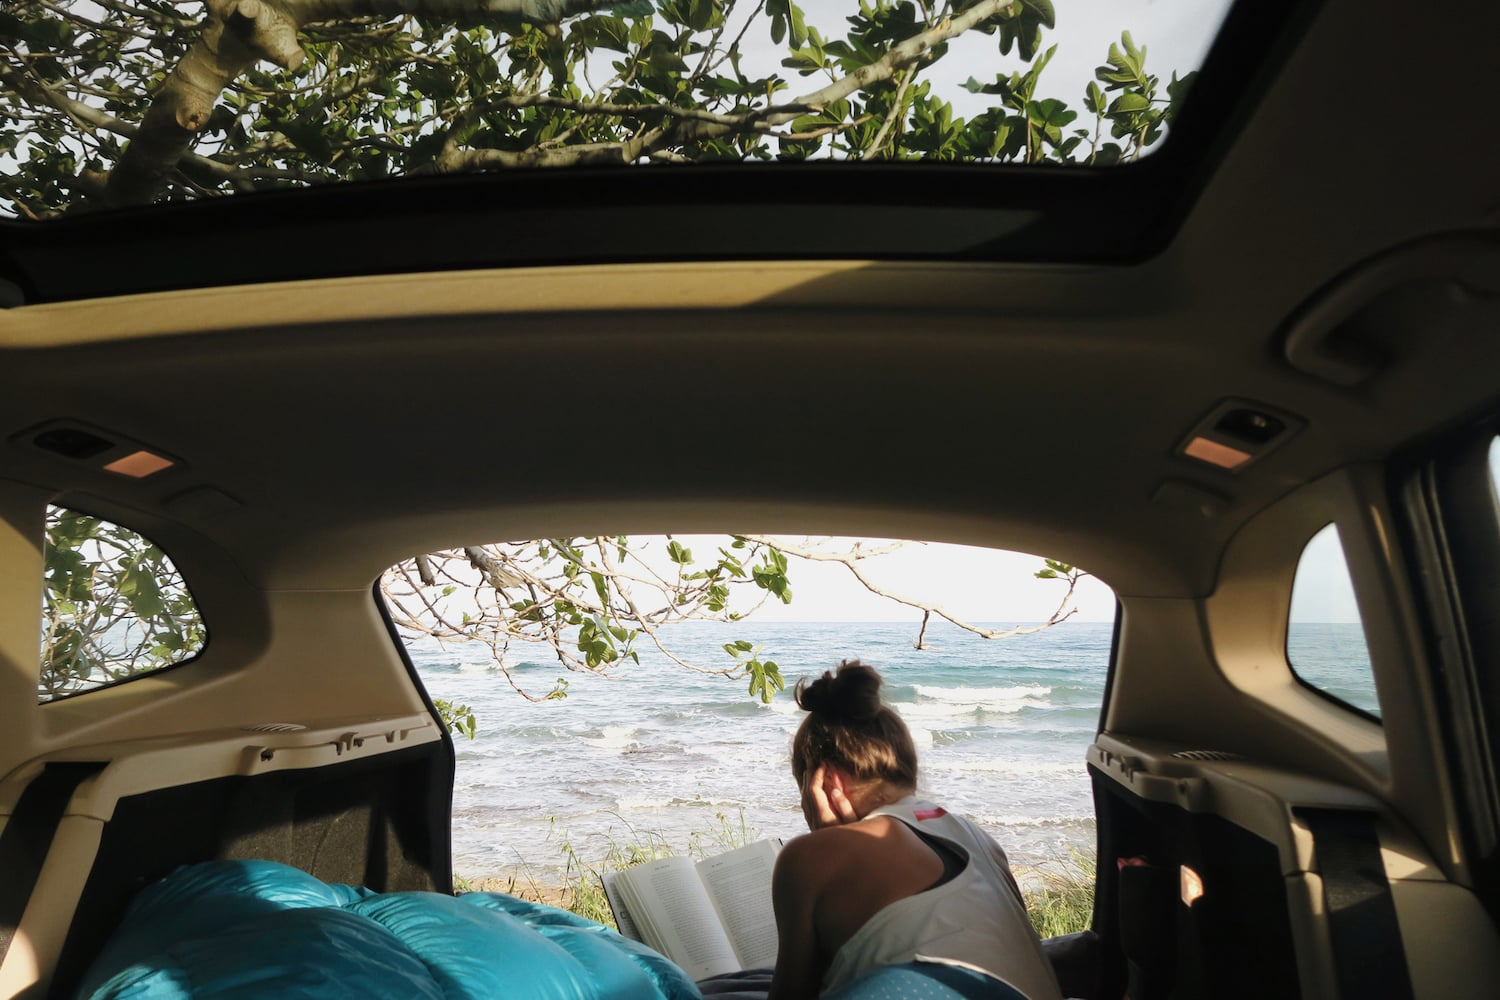 A woman living a minimalist life in a van